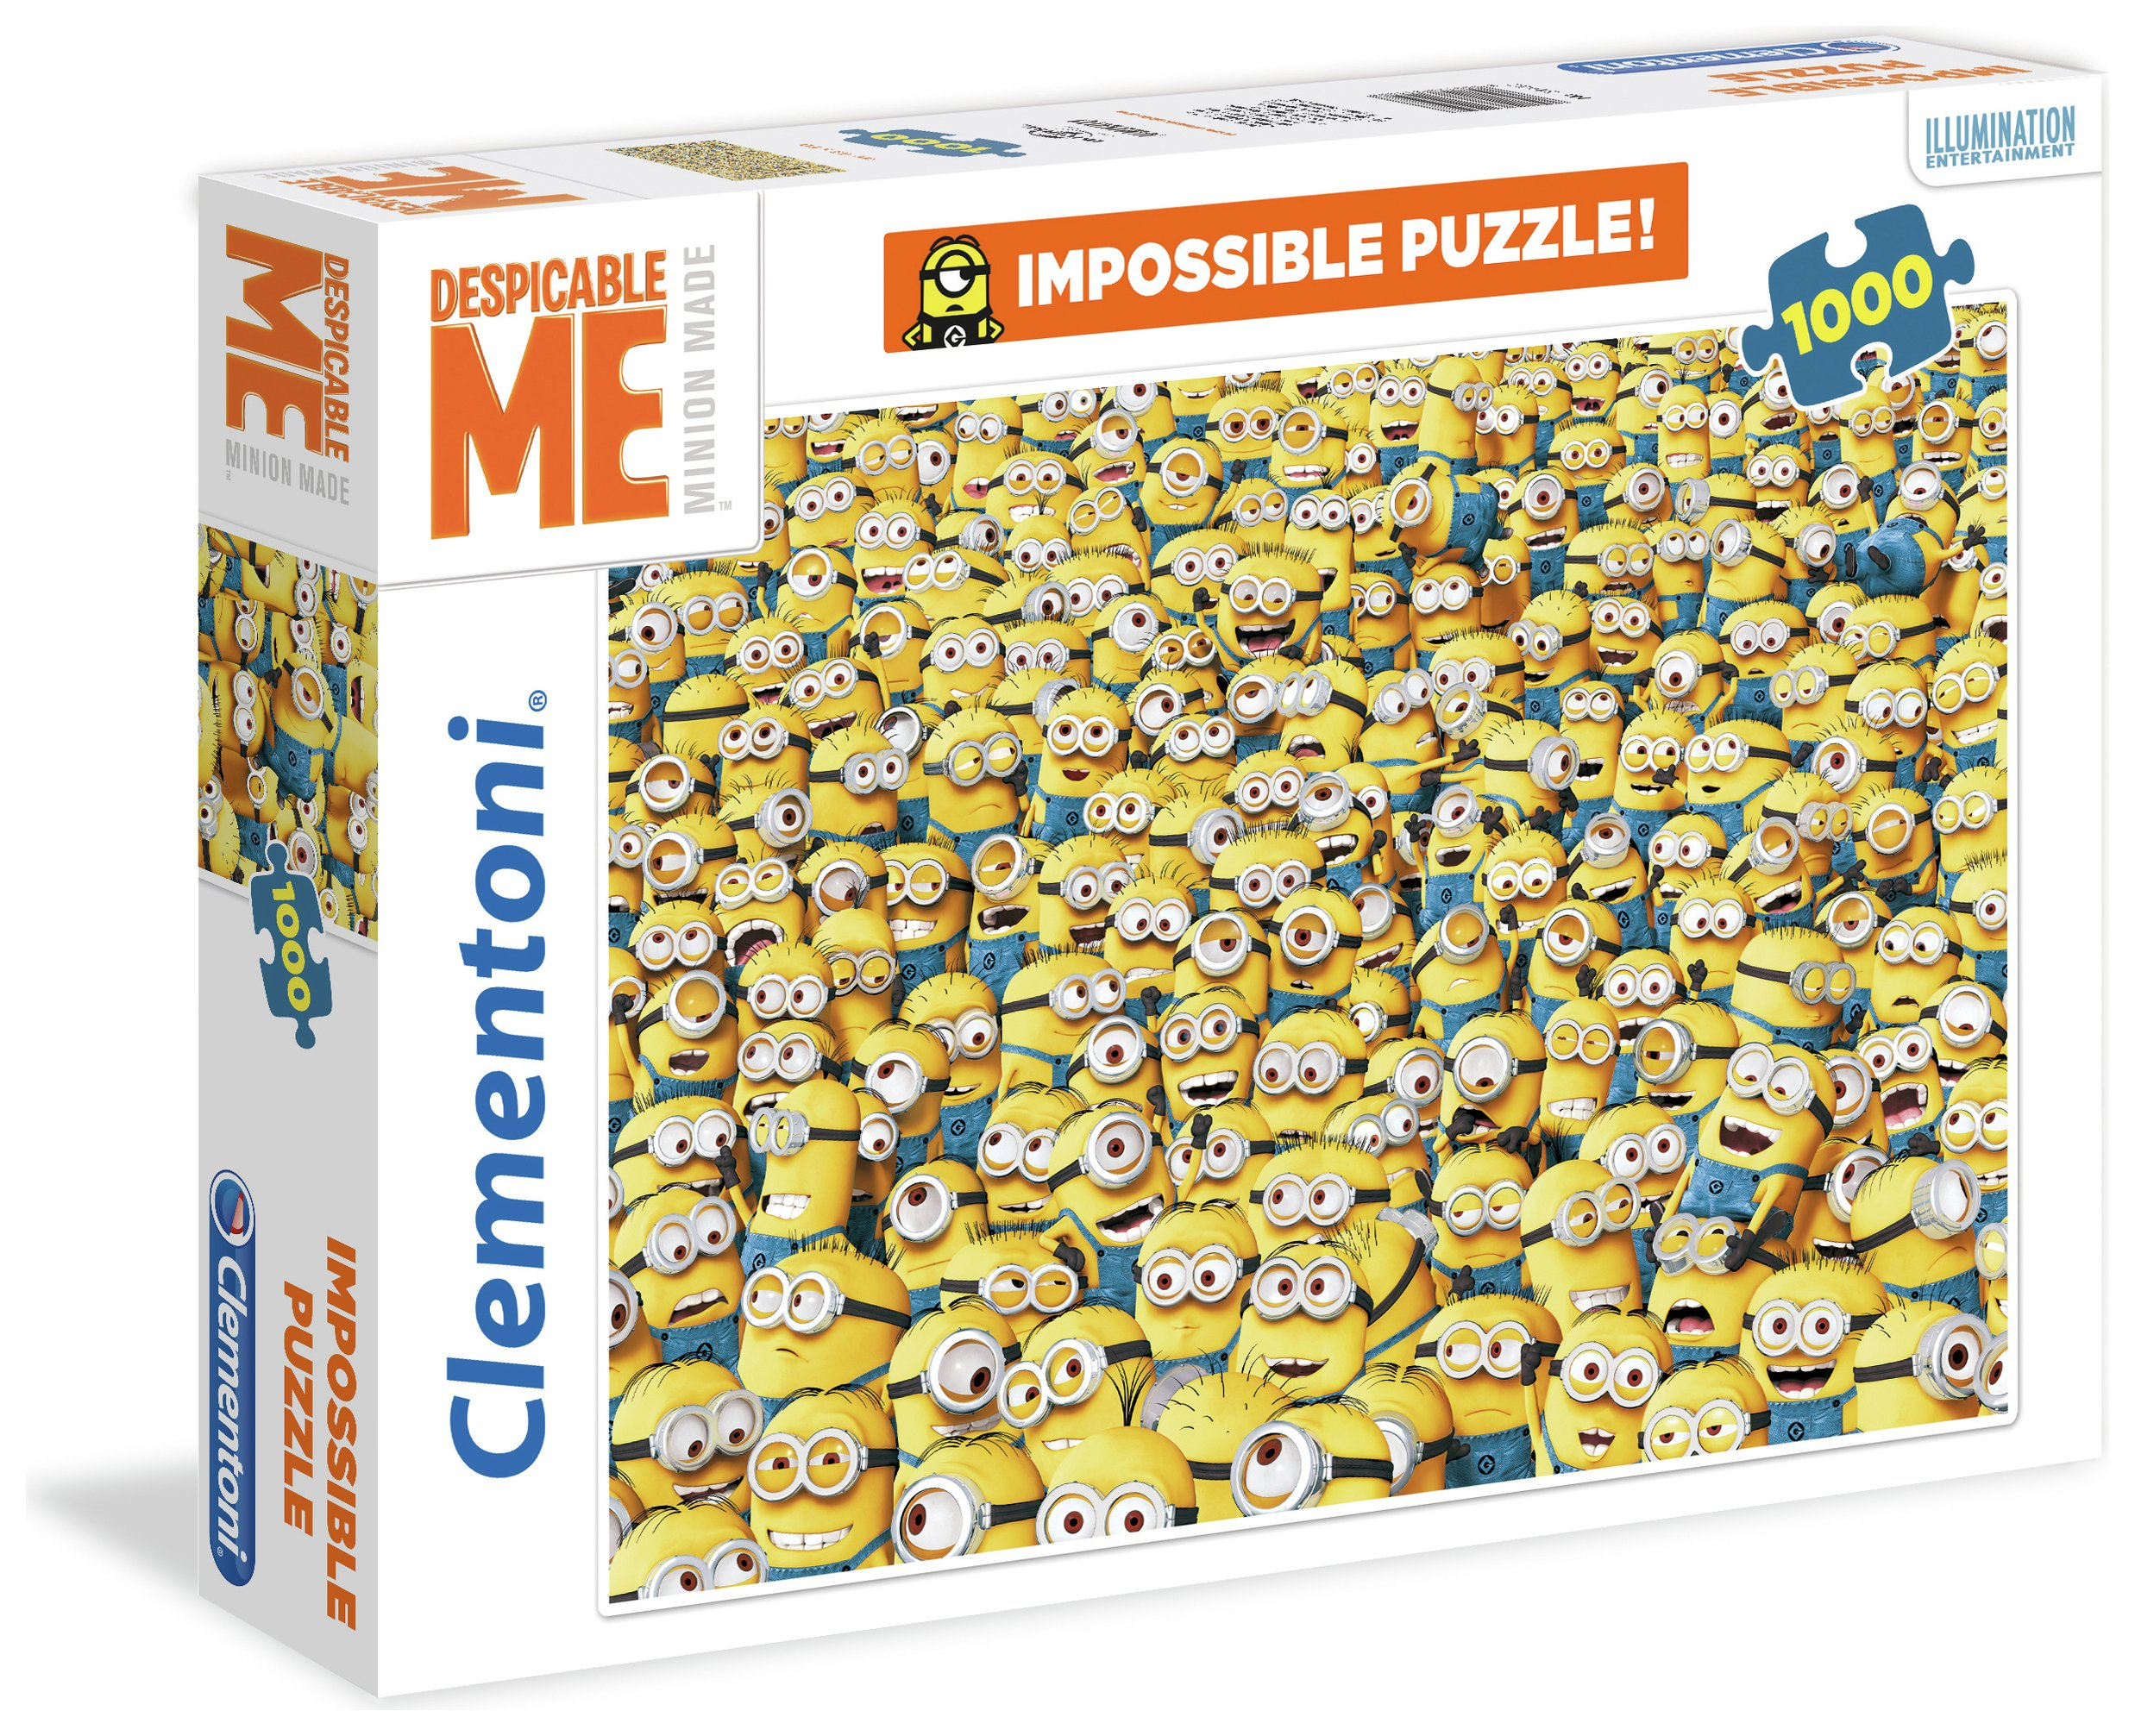 Image of Clementoni Despicable Me 3 1000 Impossible Puzzle